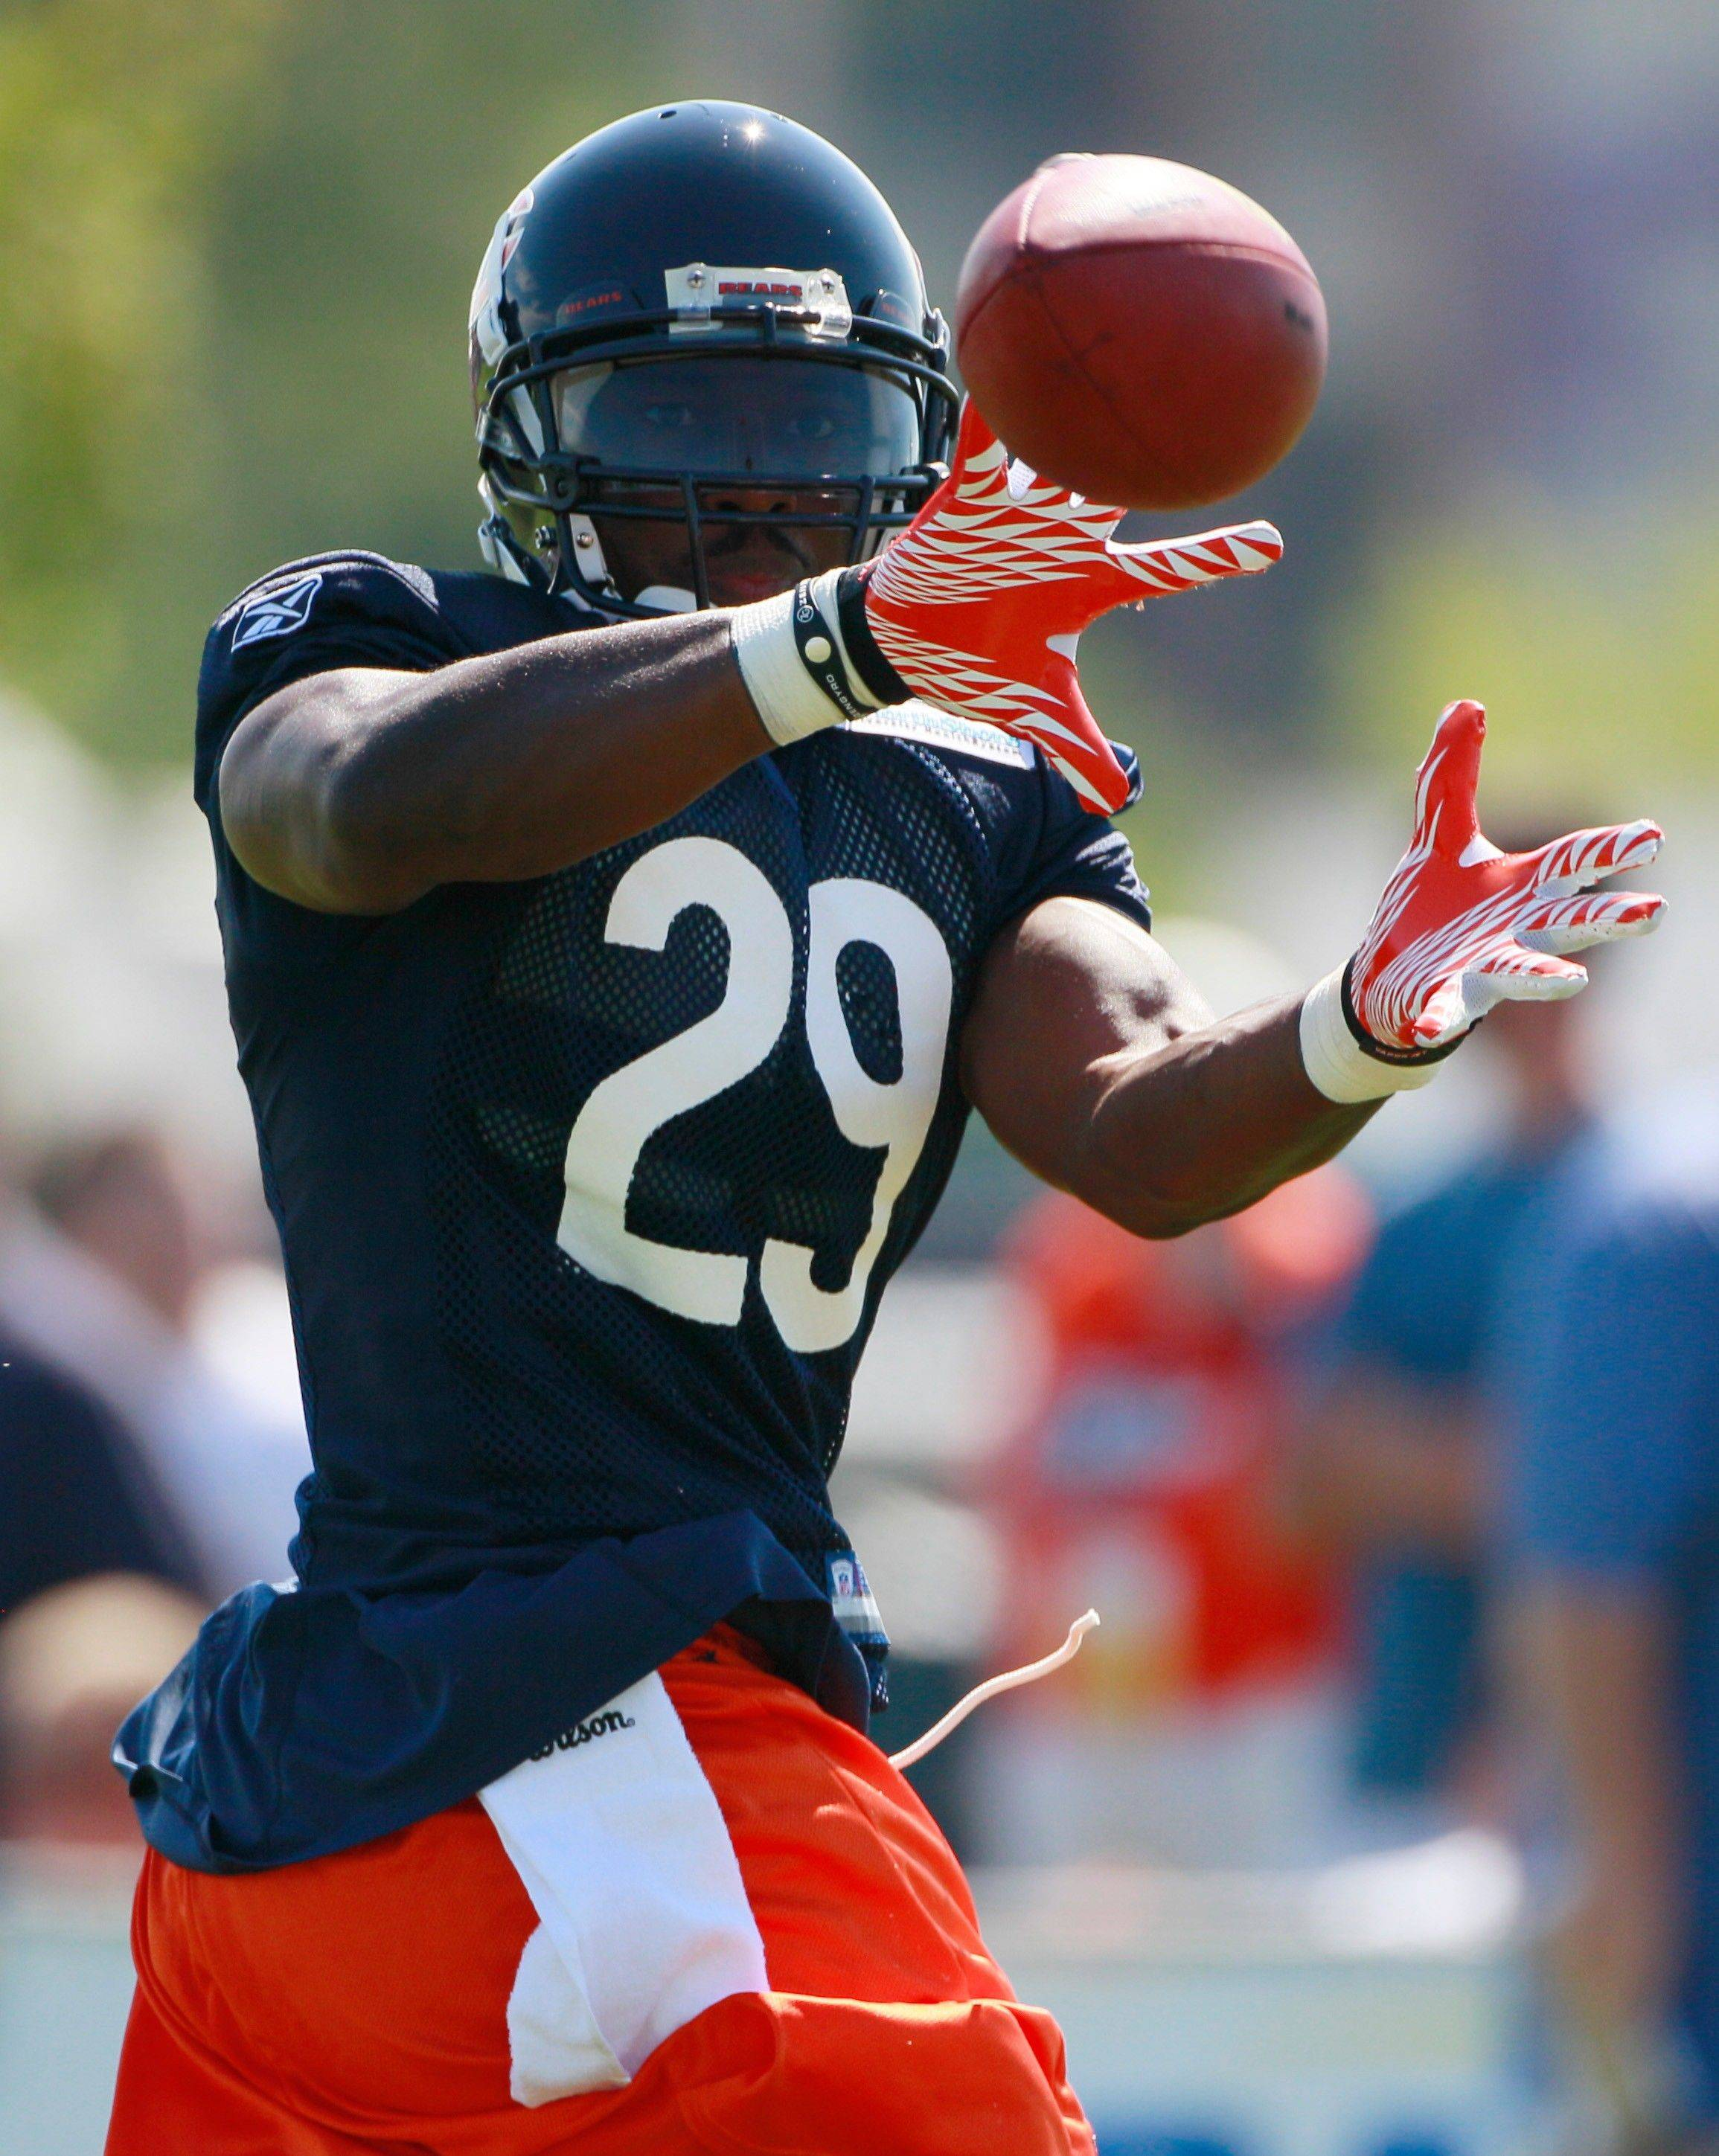 Bears running back Chester Taylor did not play in Saturday's preseason game at Tennessee and missed Monday's practice.